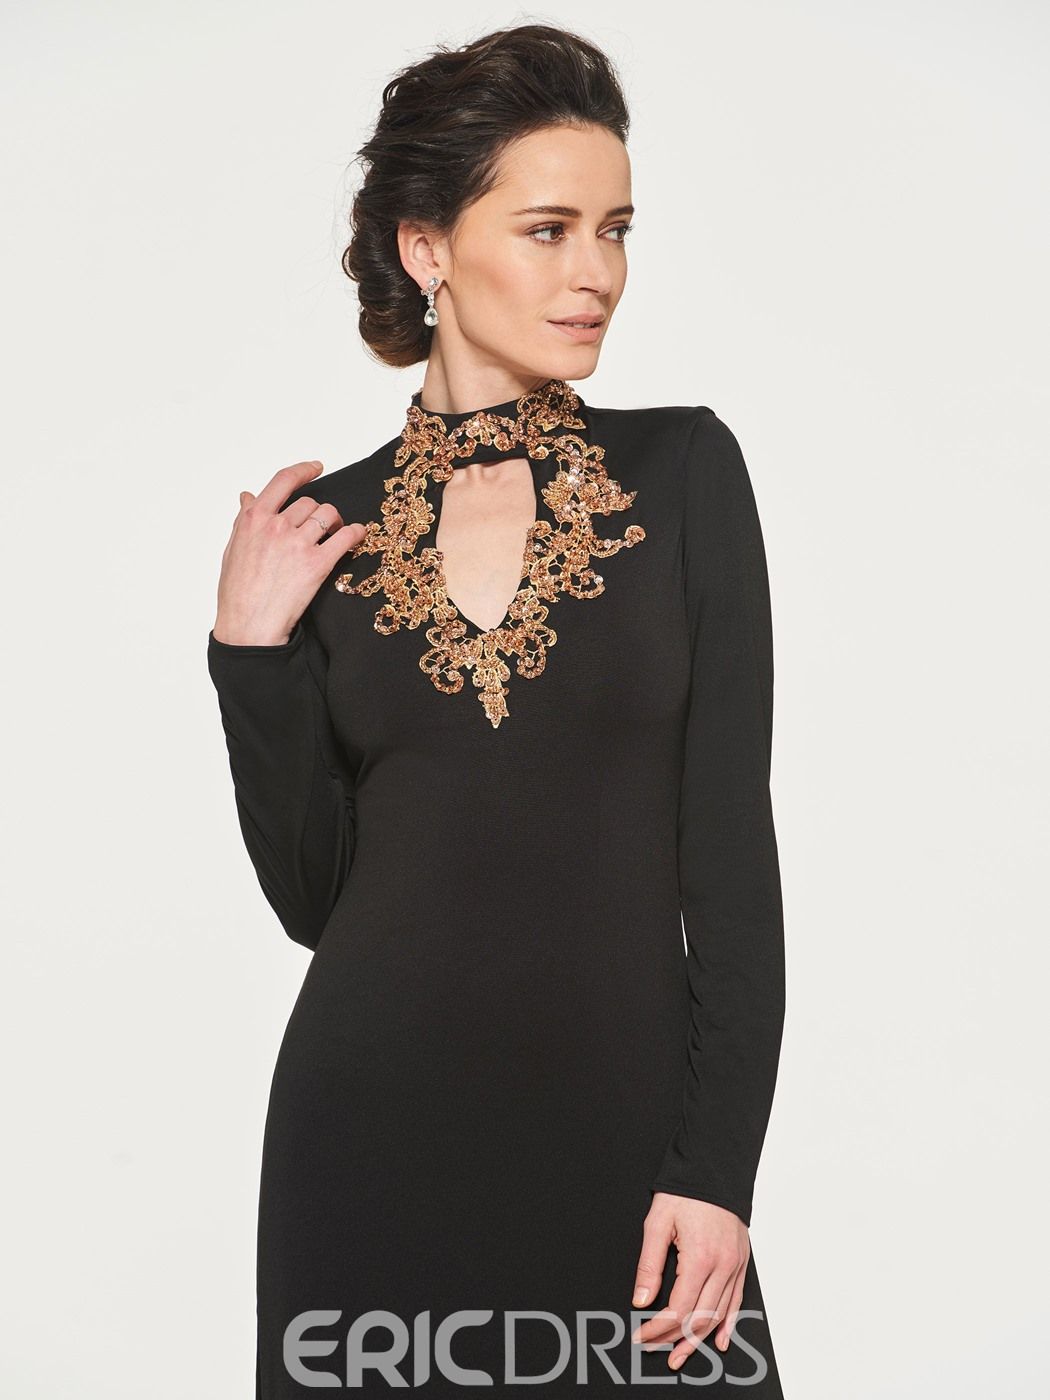 Ericdress Spandex Sequins Long Sleeves Mother of the Bride Dress